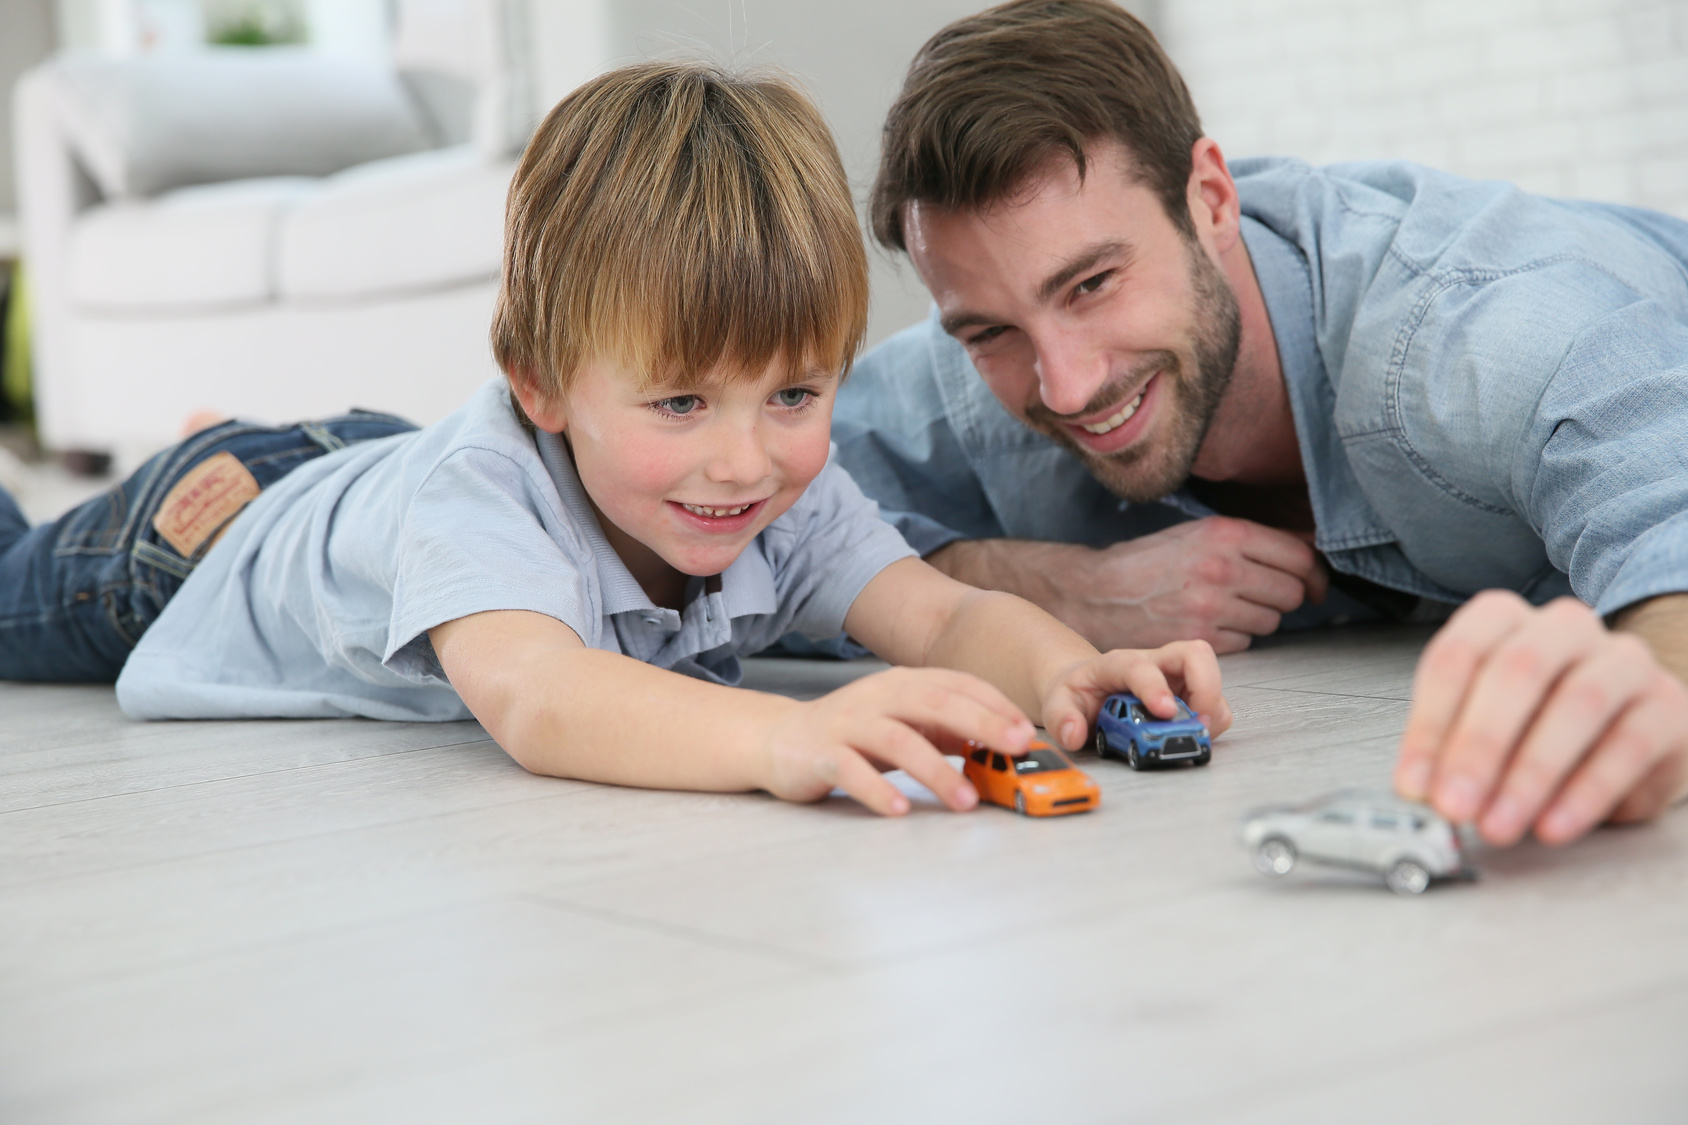 Dad And Son Playing With Toy Cars